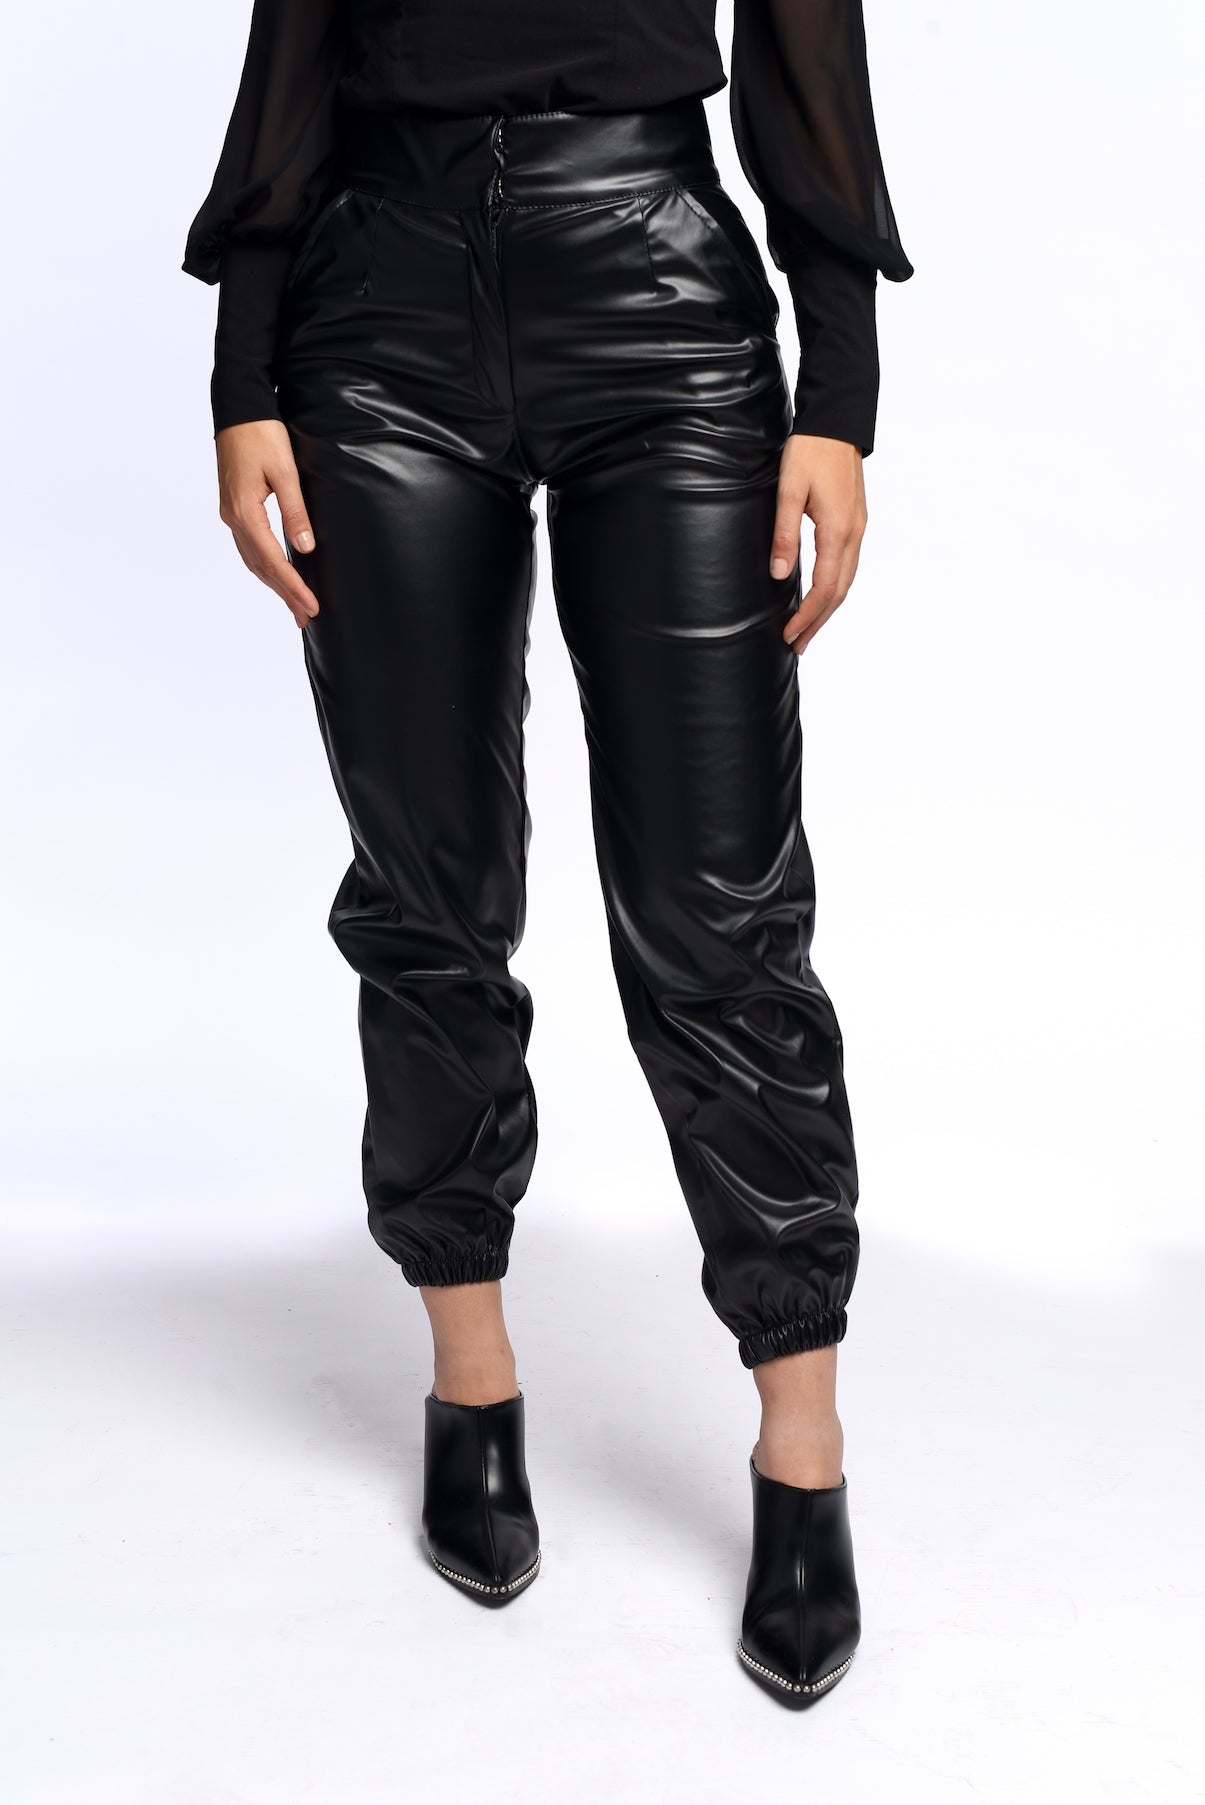 Cuffed leather pants